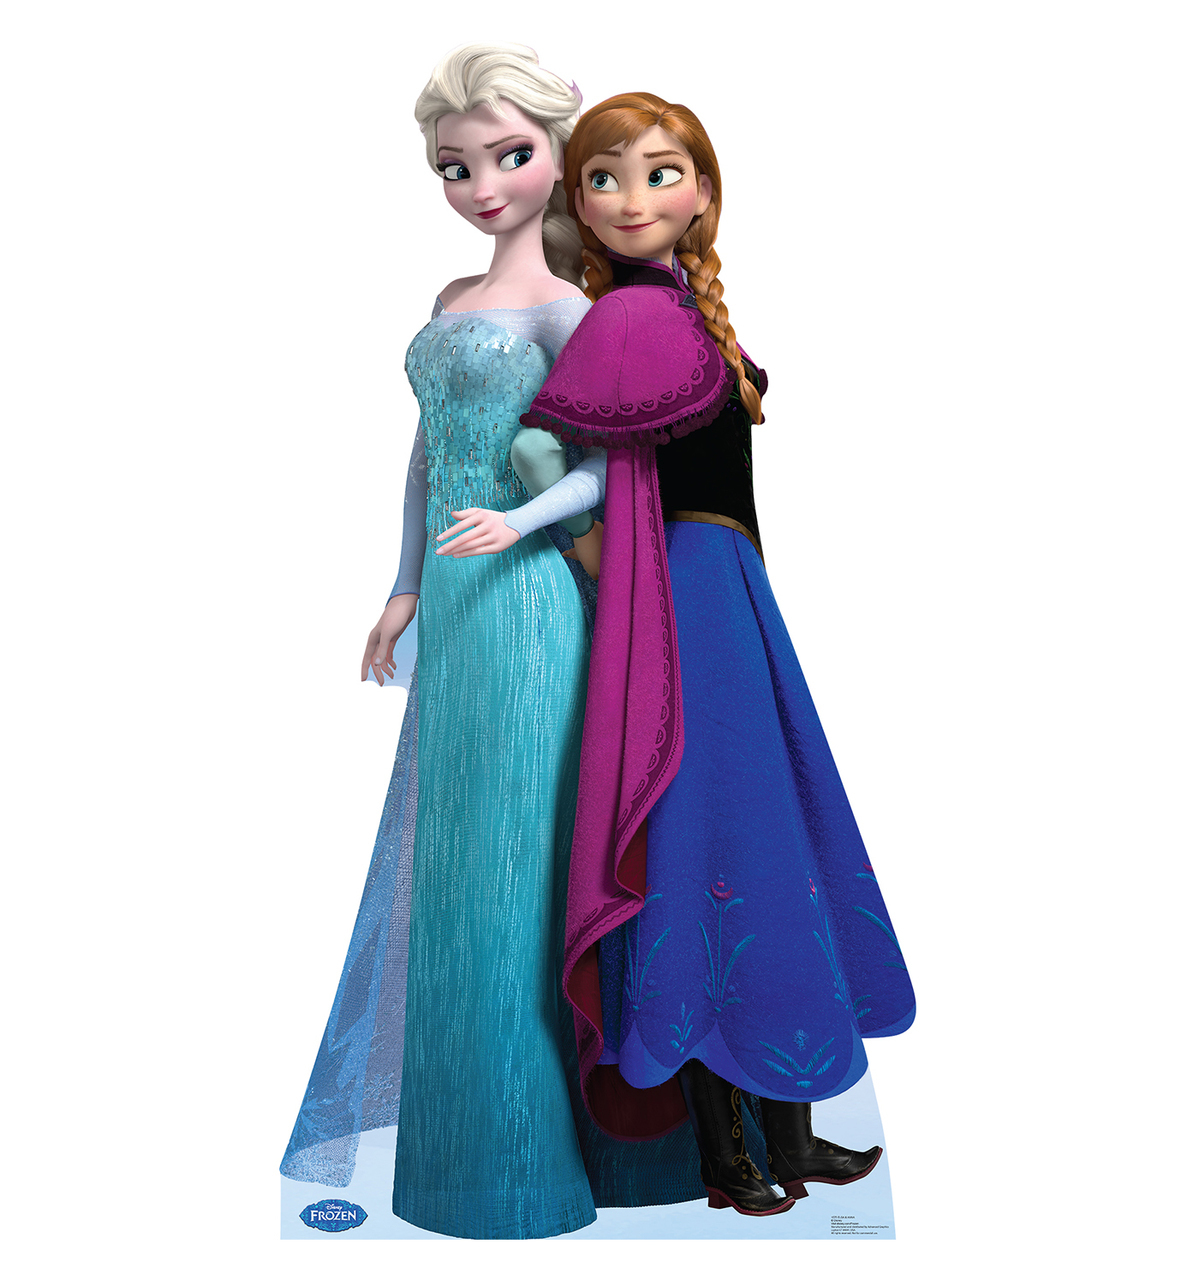 "Disney Frozen Princess Elsa and Anna Life Size Cutout Stand Large Cardboard Cutout Party Prop Decor Birthday party Supplies, Disney's The Princess and the Frog Birthday decoration Size: 60"" x 49"""